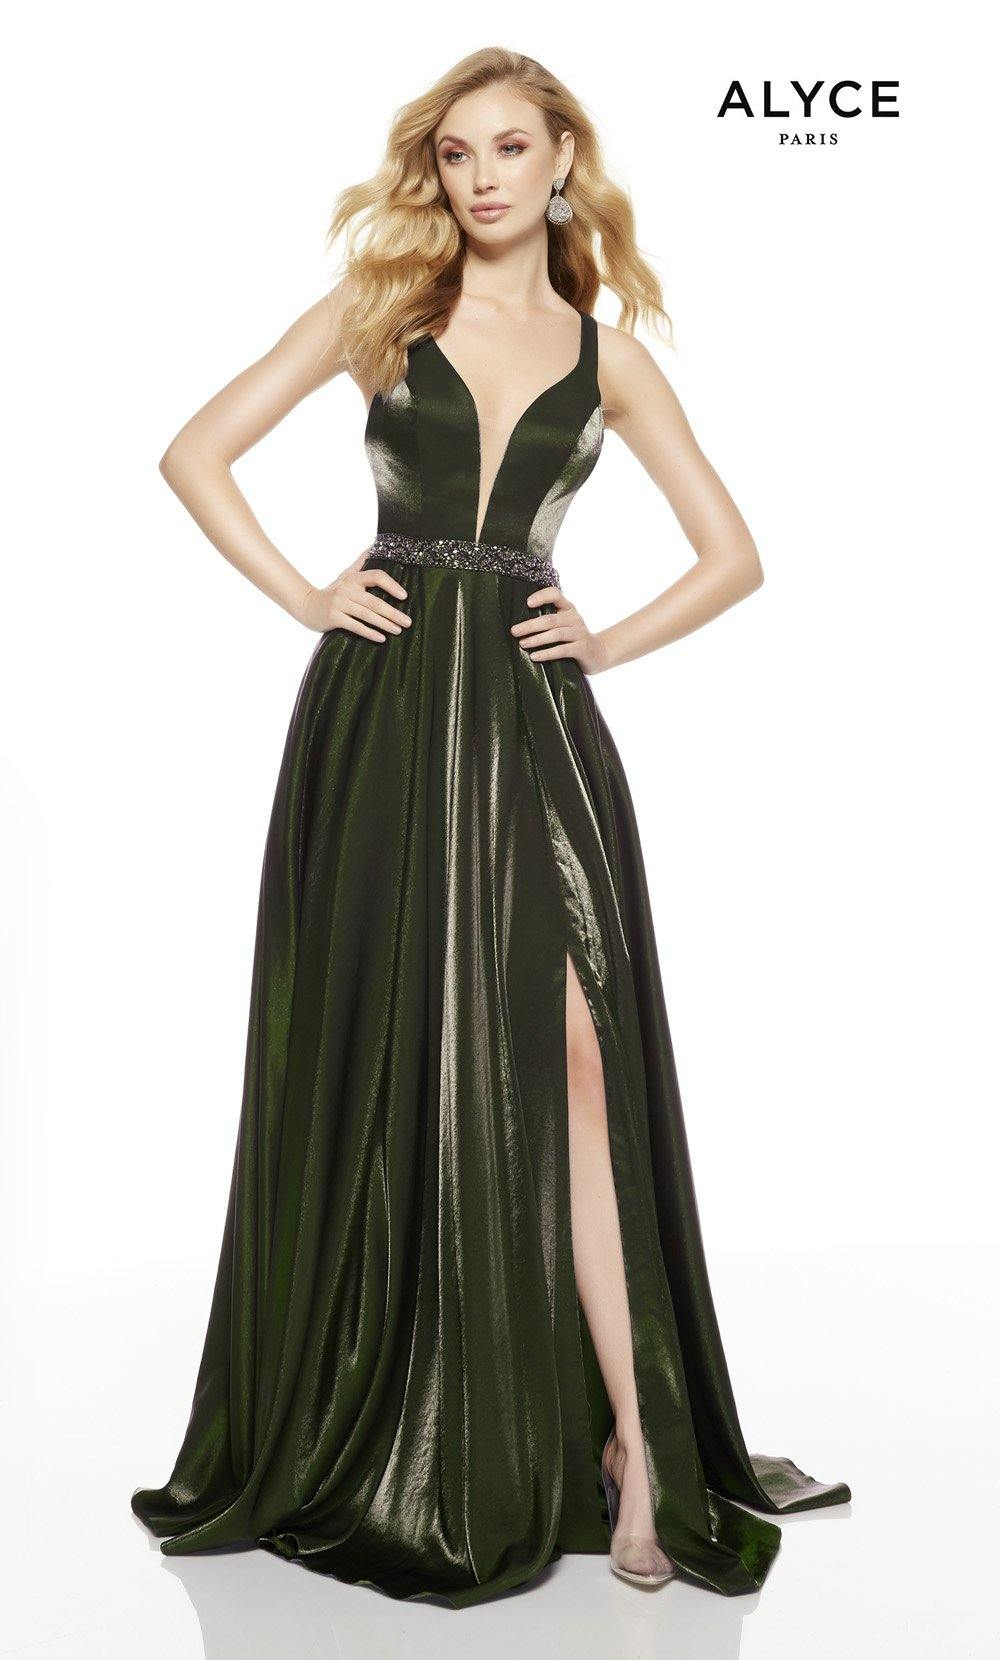 Olive Green prom dress with a slit and plunging neckline